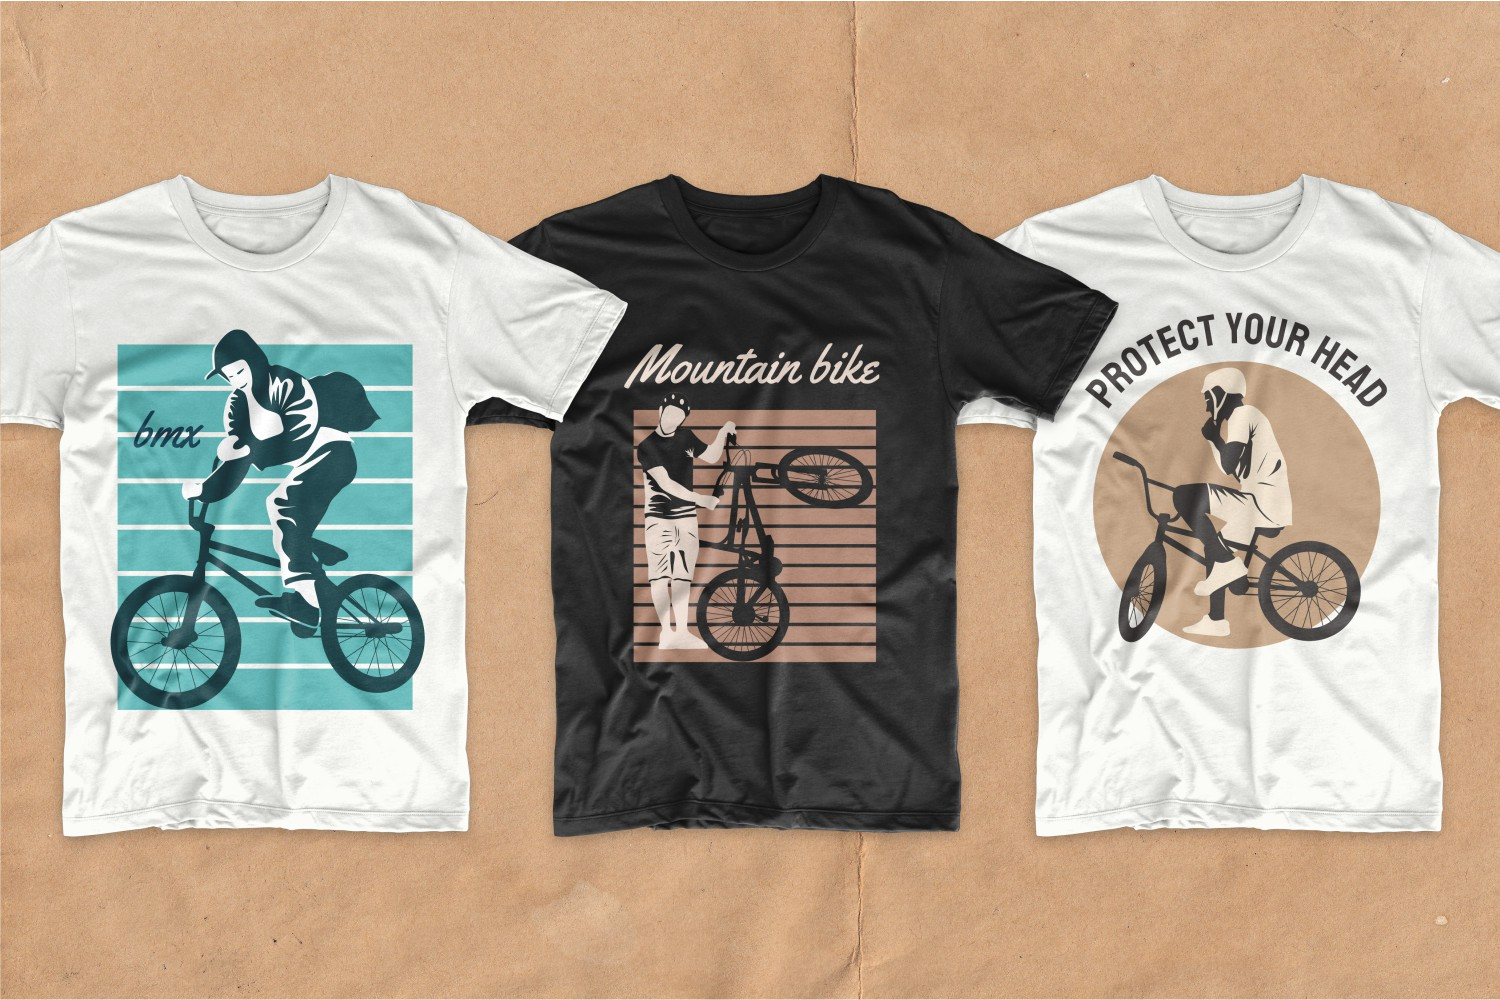 Two white and one black tees with simple yet stylish cycling graphics.